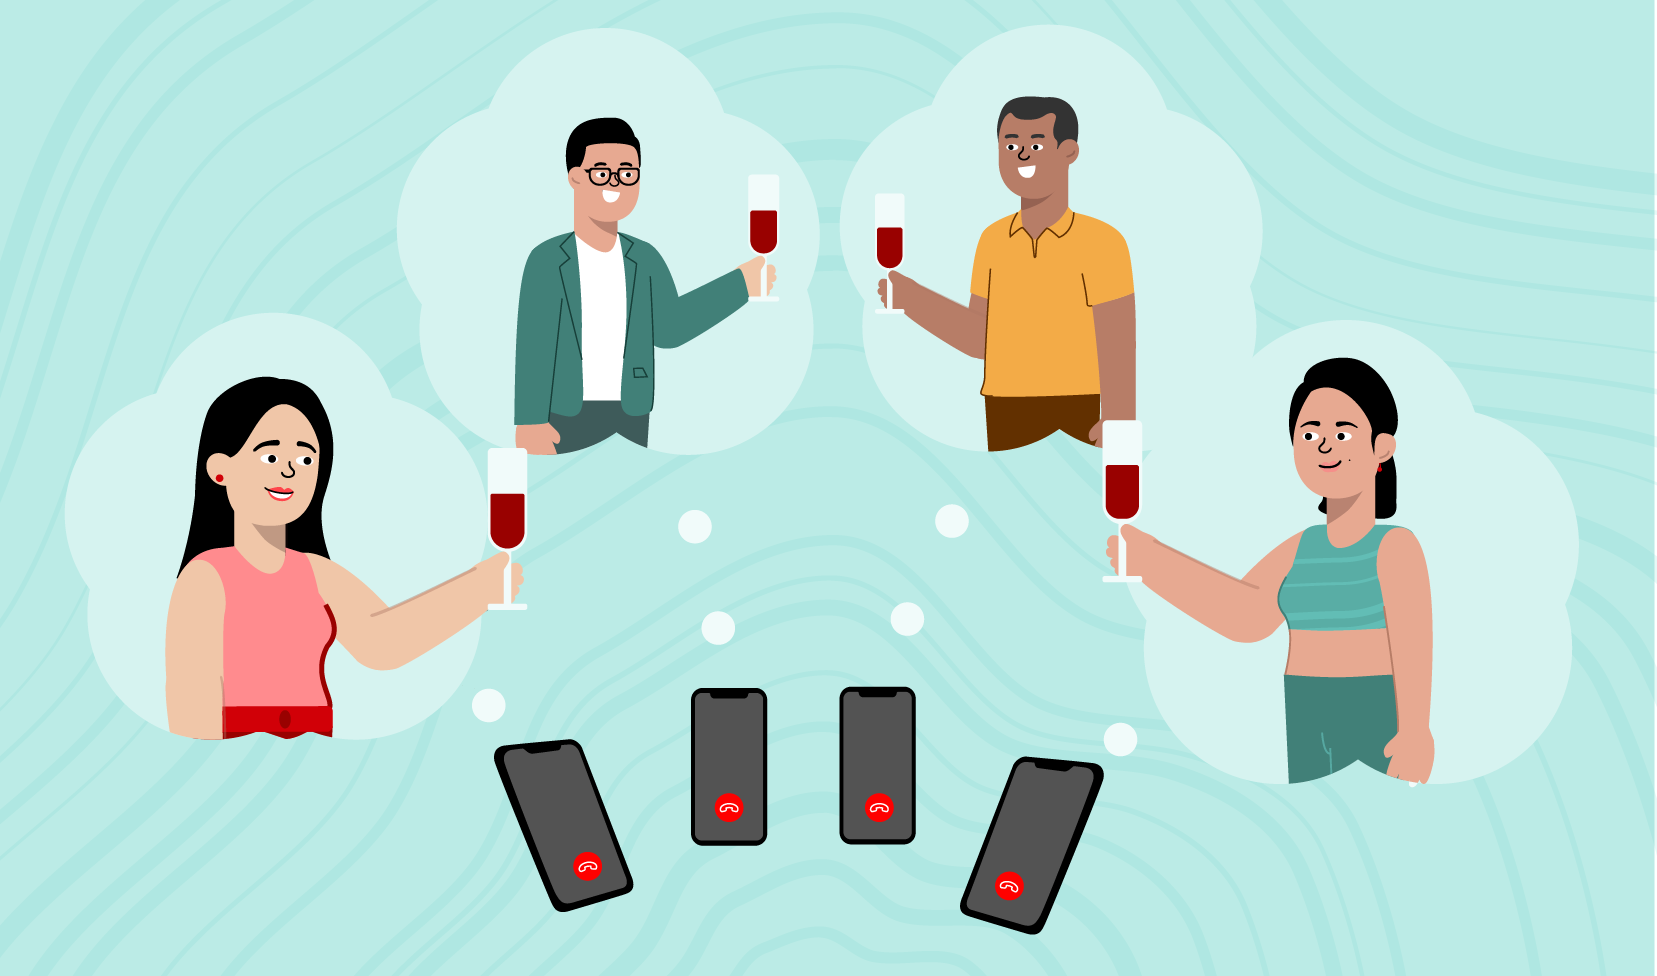 Staying Connected While Social Distancing During COVID-19